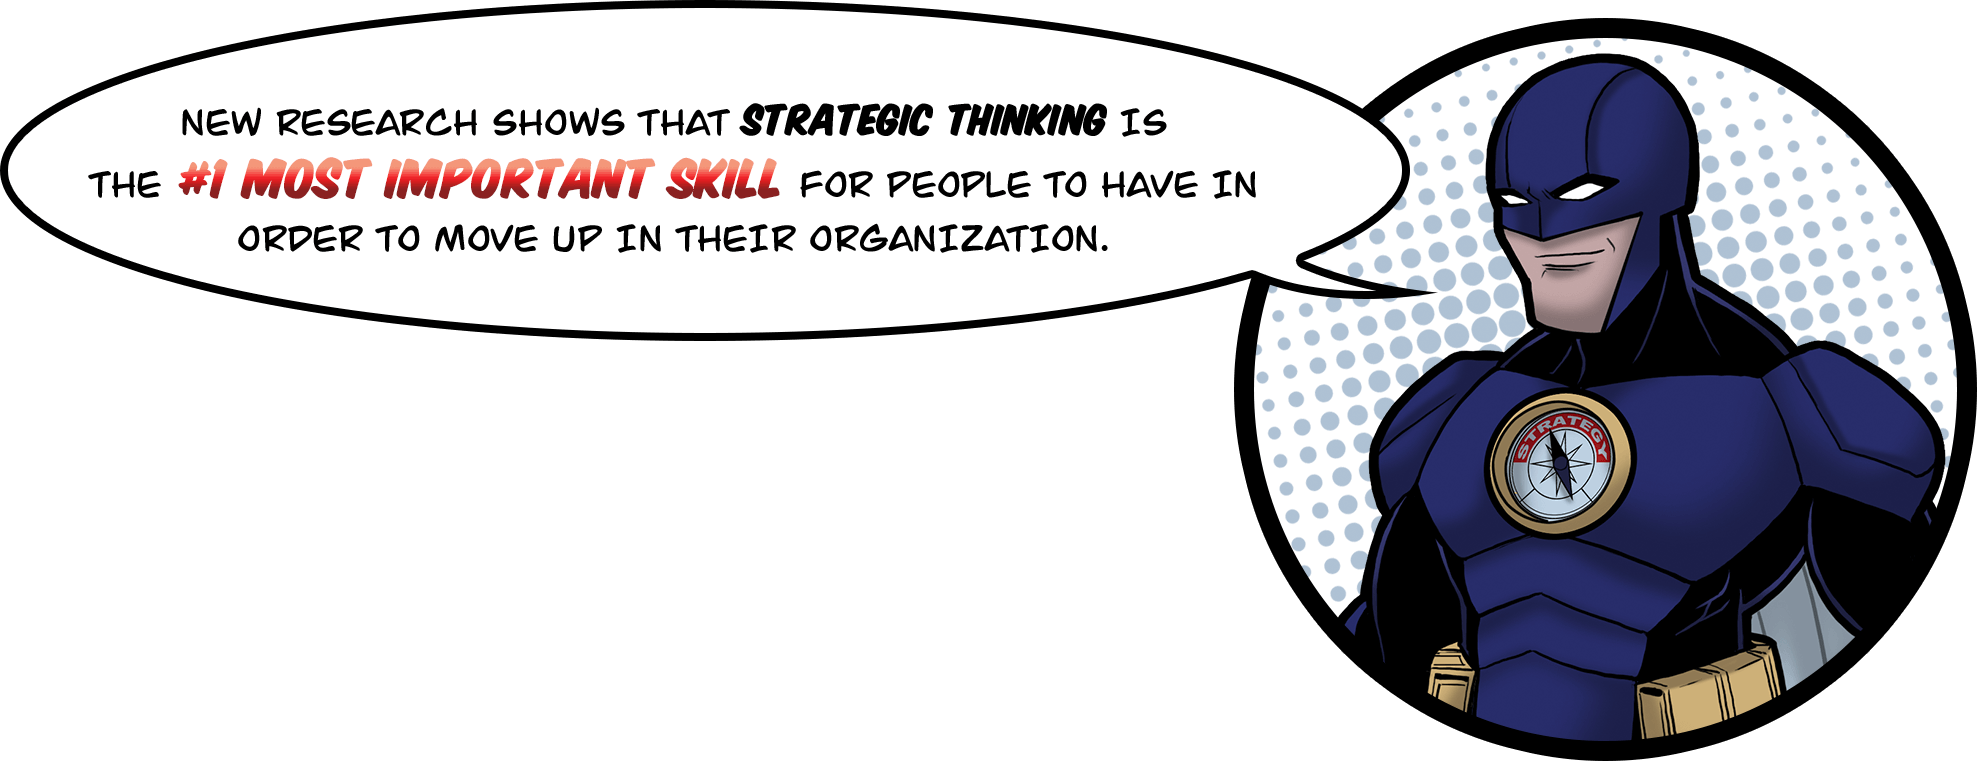 New research shows that strategic thinking is the No. 1 most important skill for people to have in order to move up in their organization.